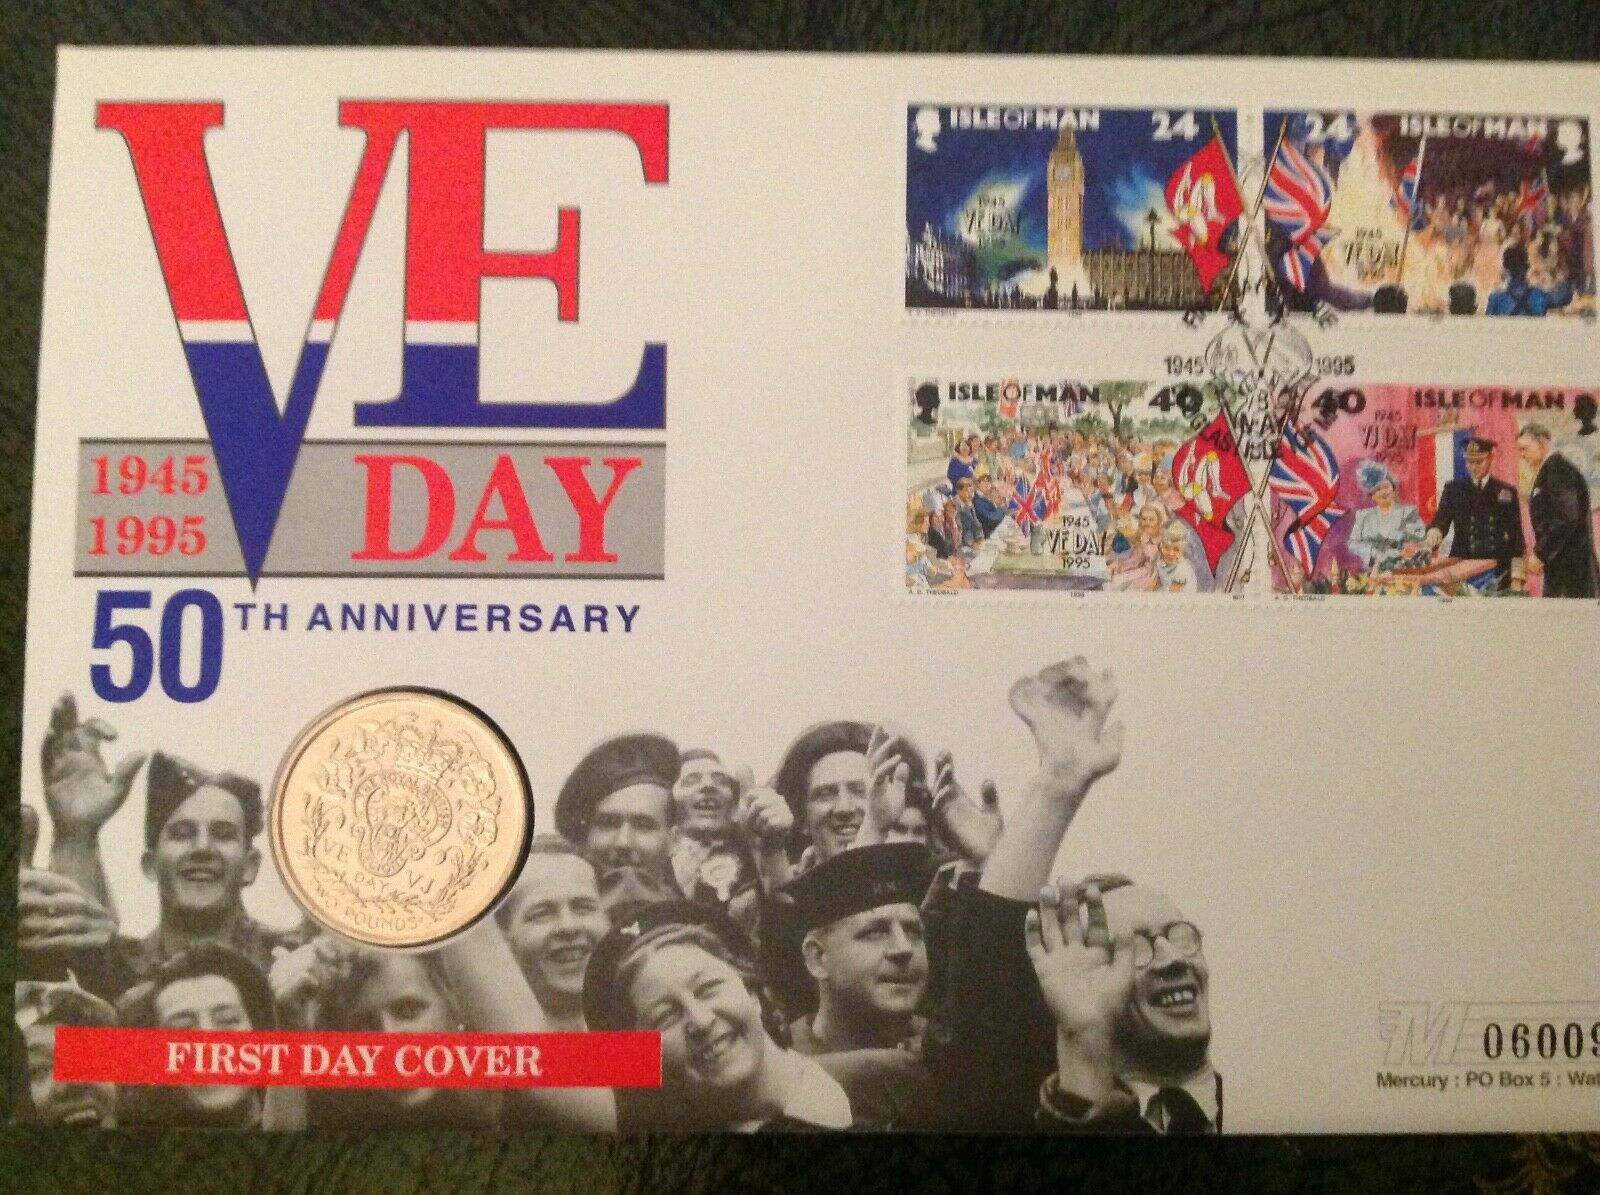 VE Day 50th Anniversary FDC with Coin